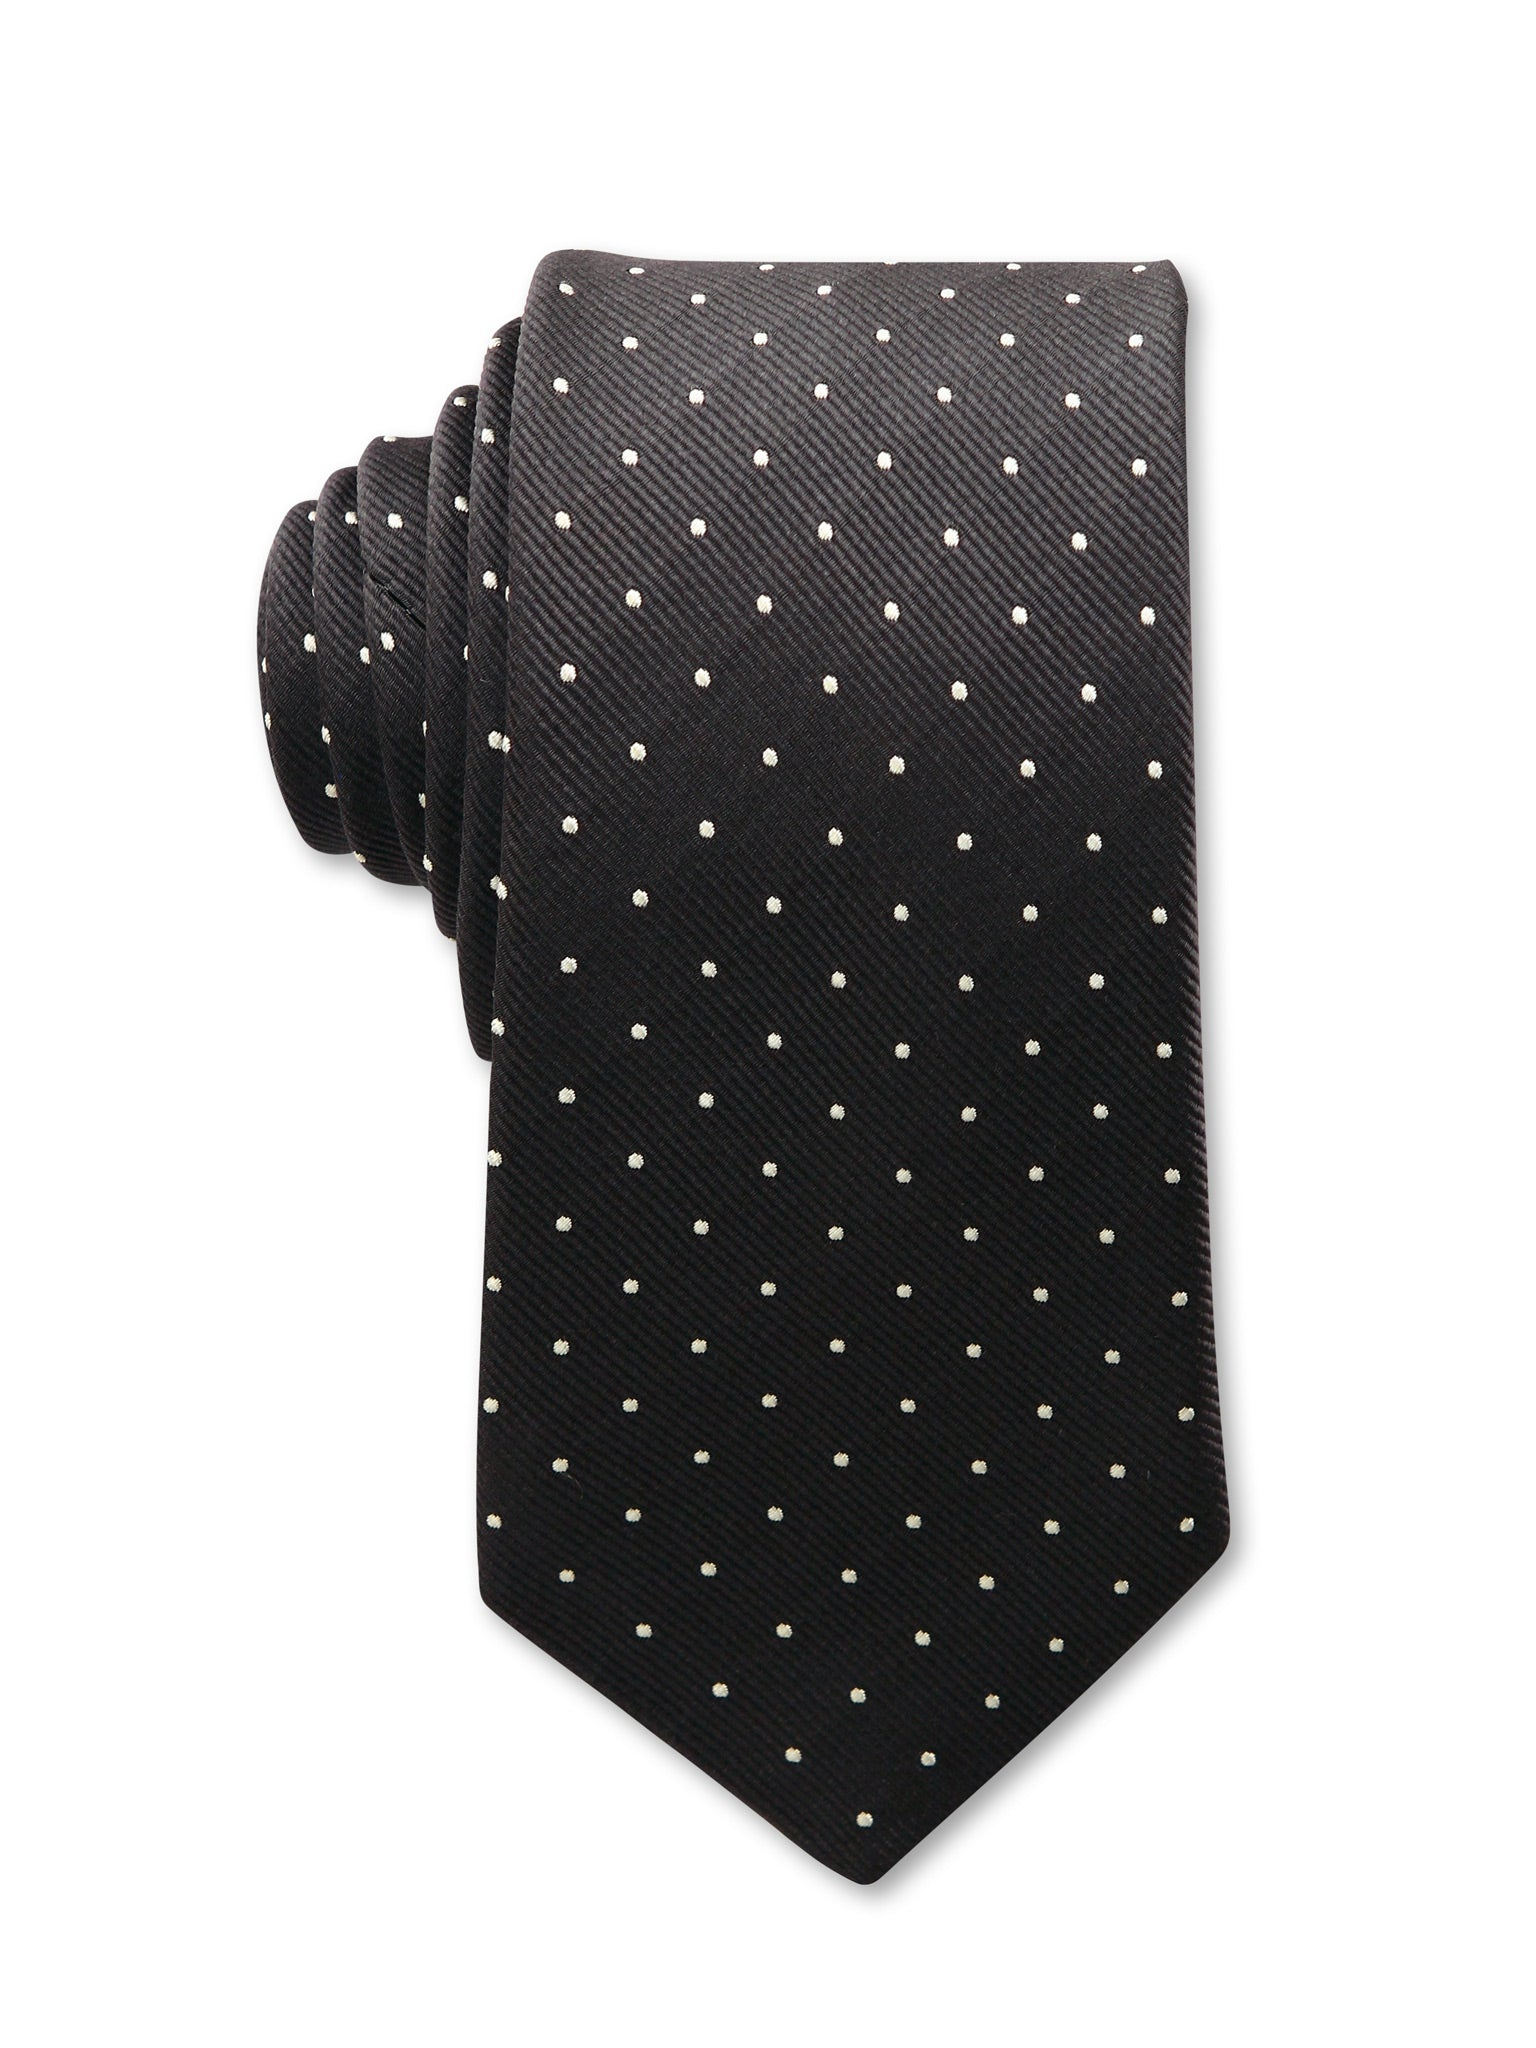 Black White Spot 7cm Owen Luxury Silk Tie Made in Australia